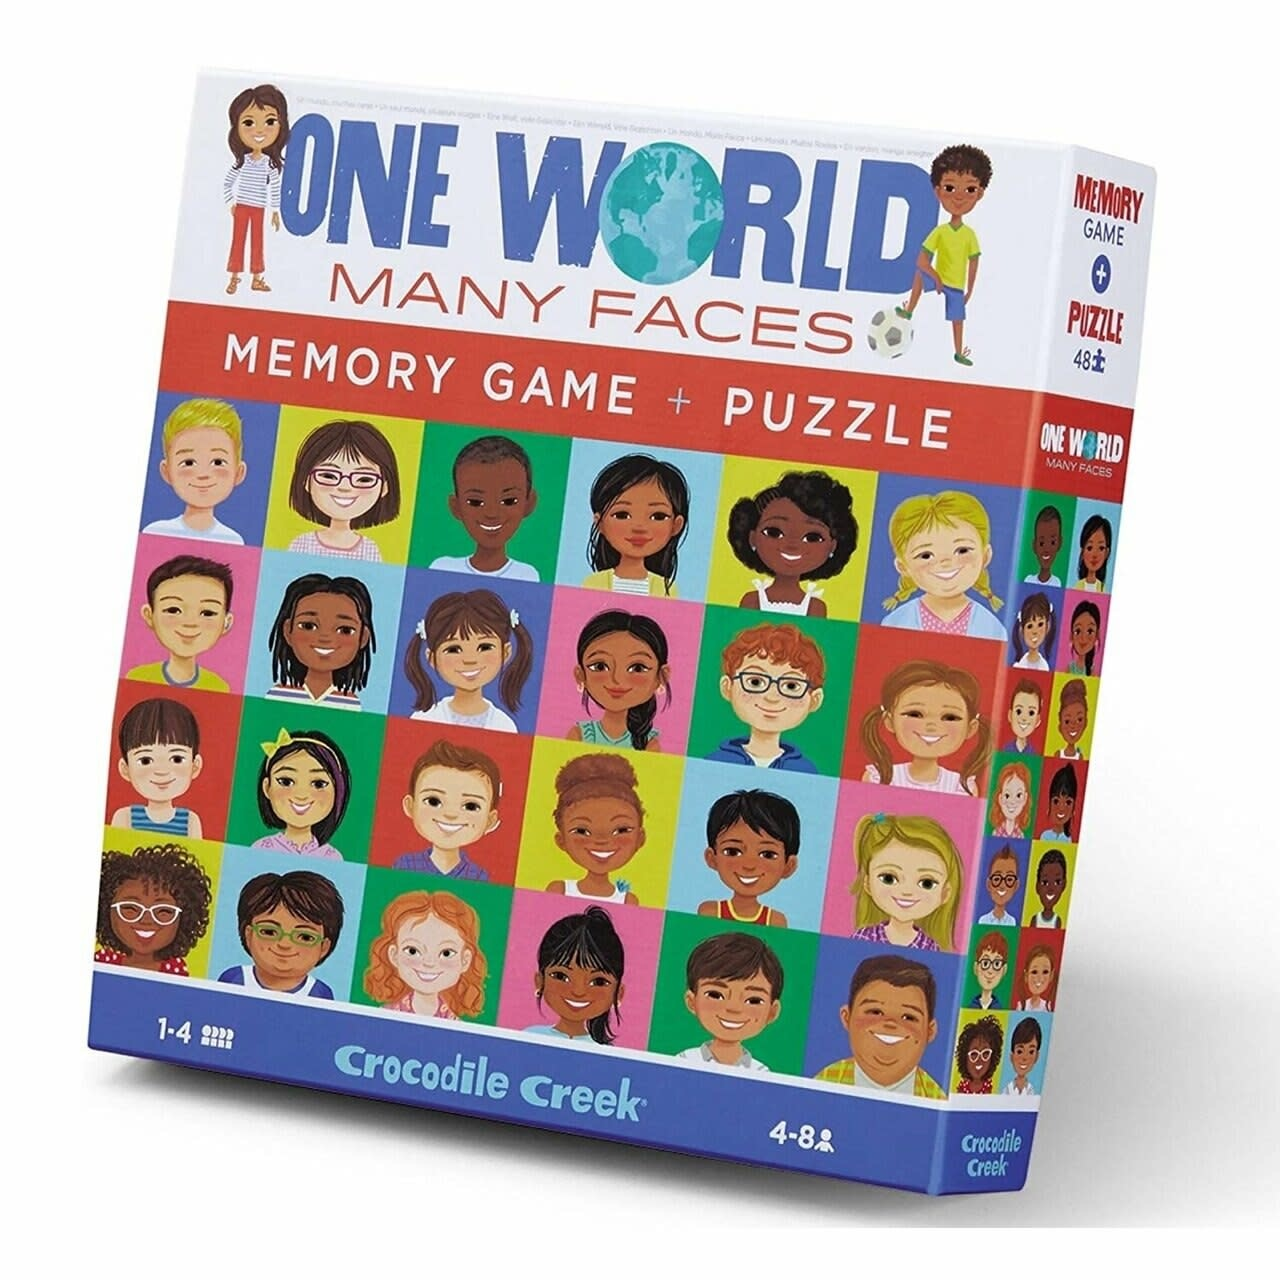 One World Many Faces 48-pc Puzzle & Memory Game